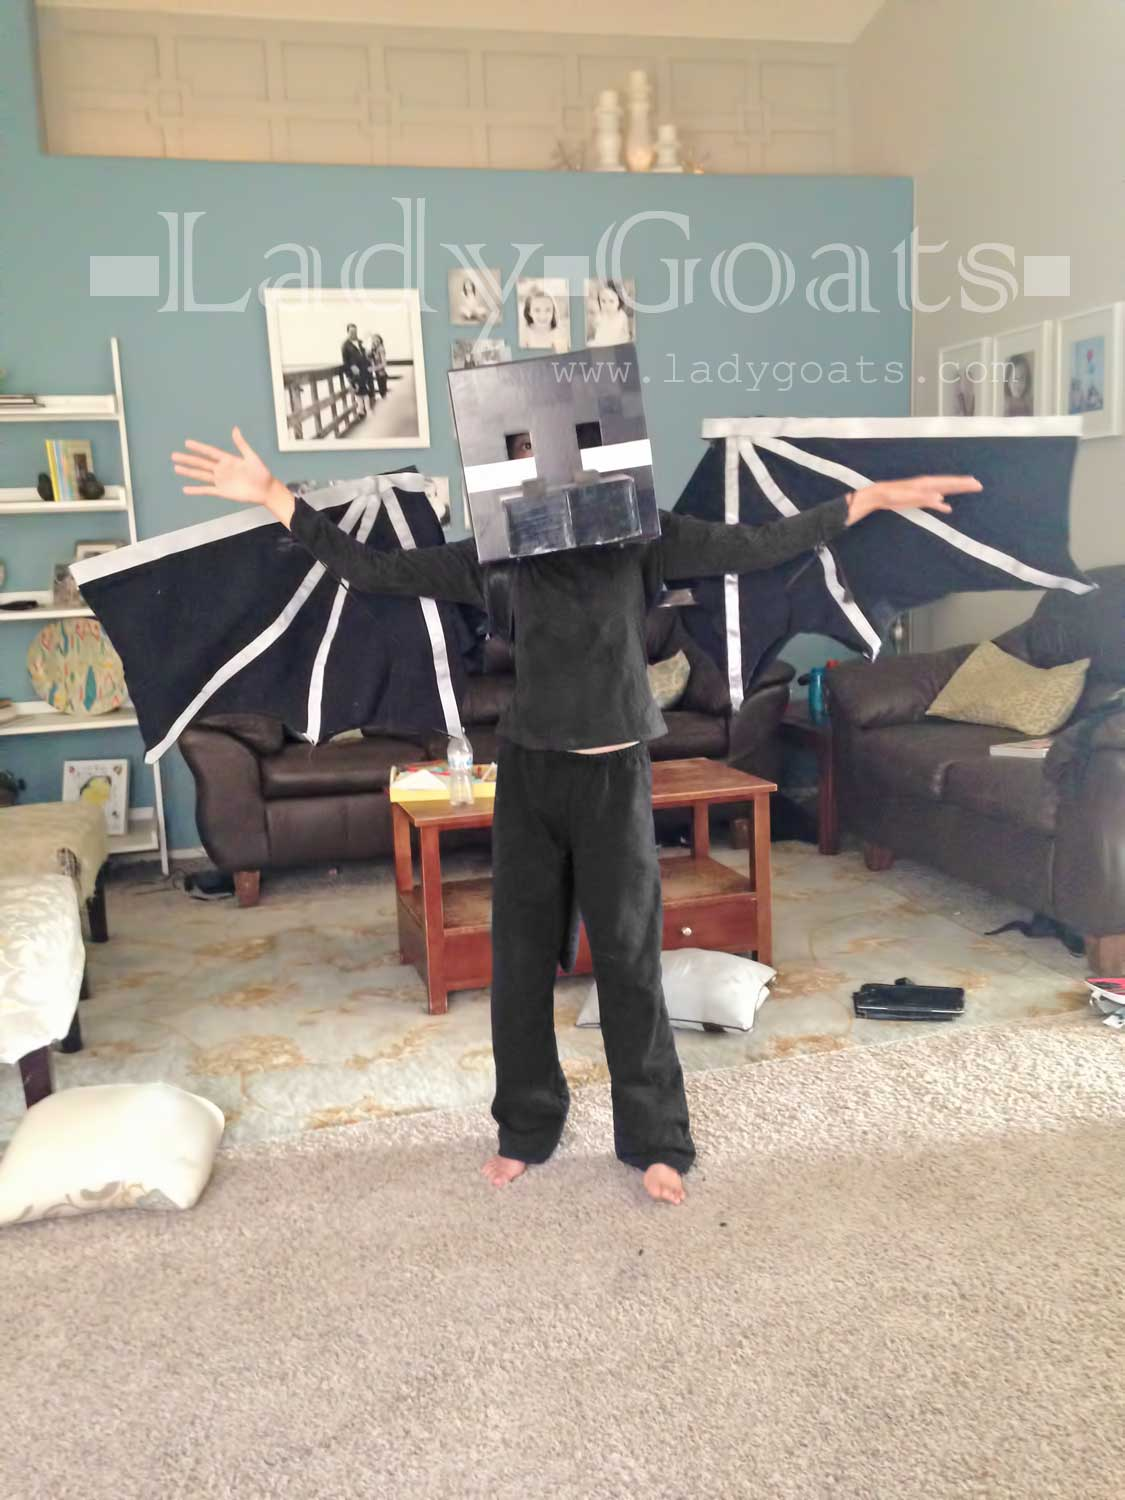 Lady goats updated diy ender dragon costume articulating wings updated diy ender dragon costume articulating wings solutioingenieria Choice Image